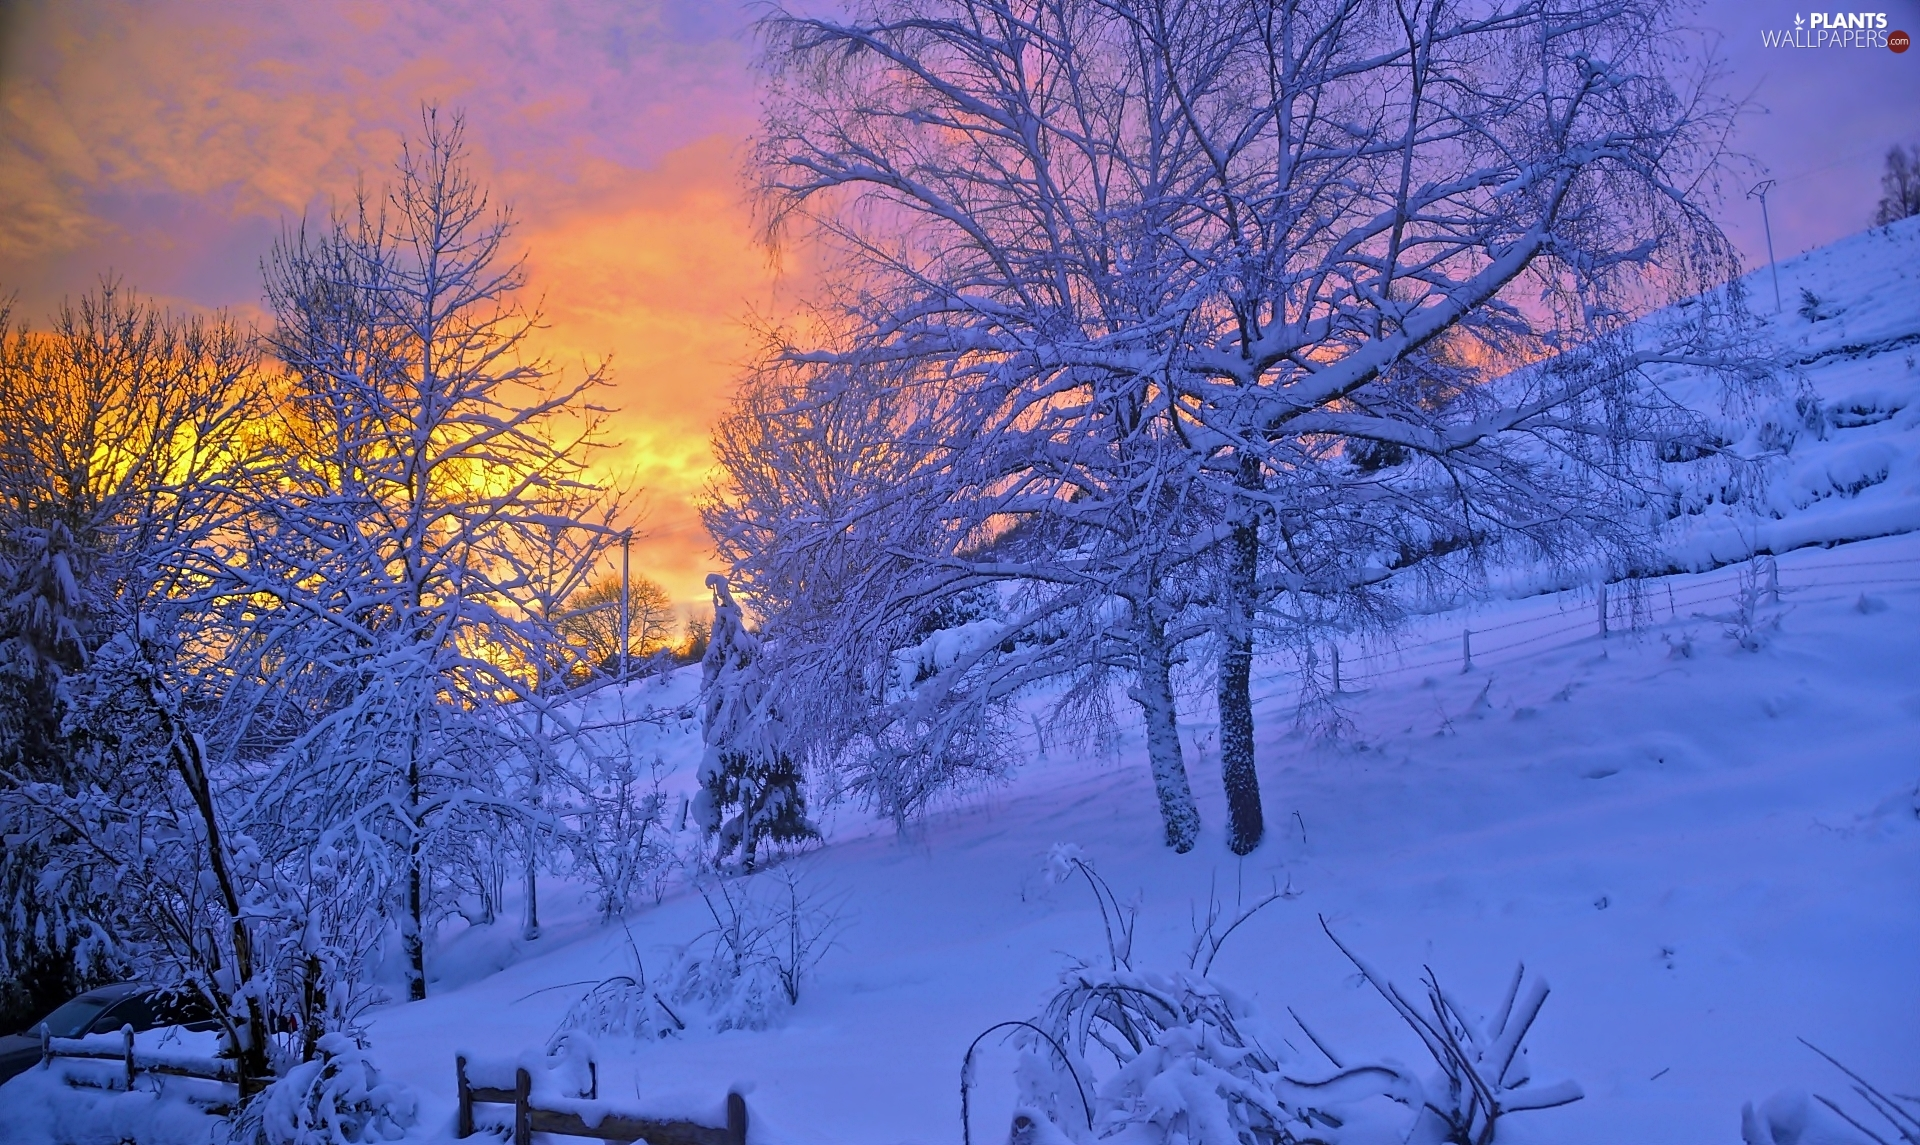 trees, viewes, winter, Snowy, Great Sunsets